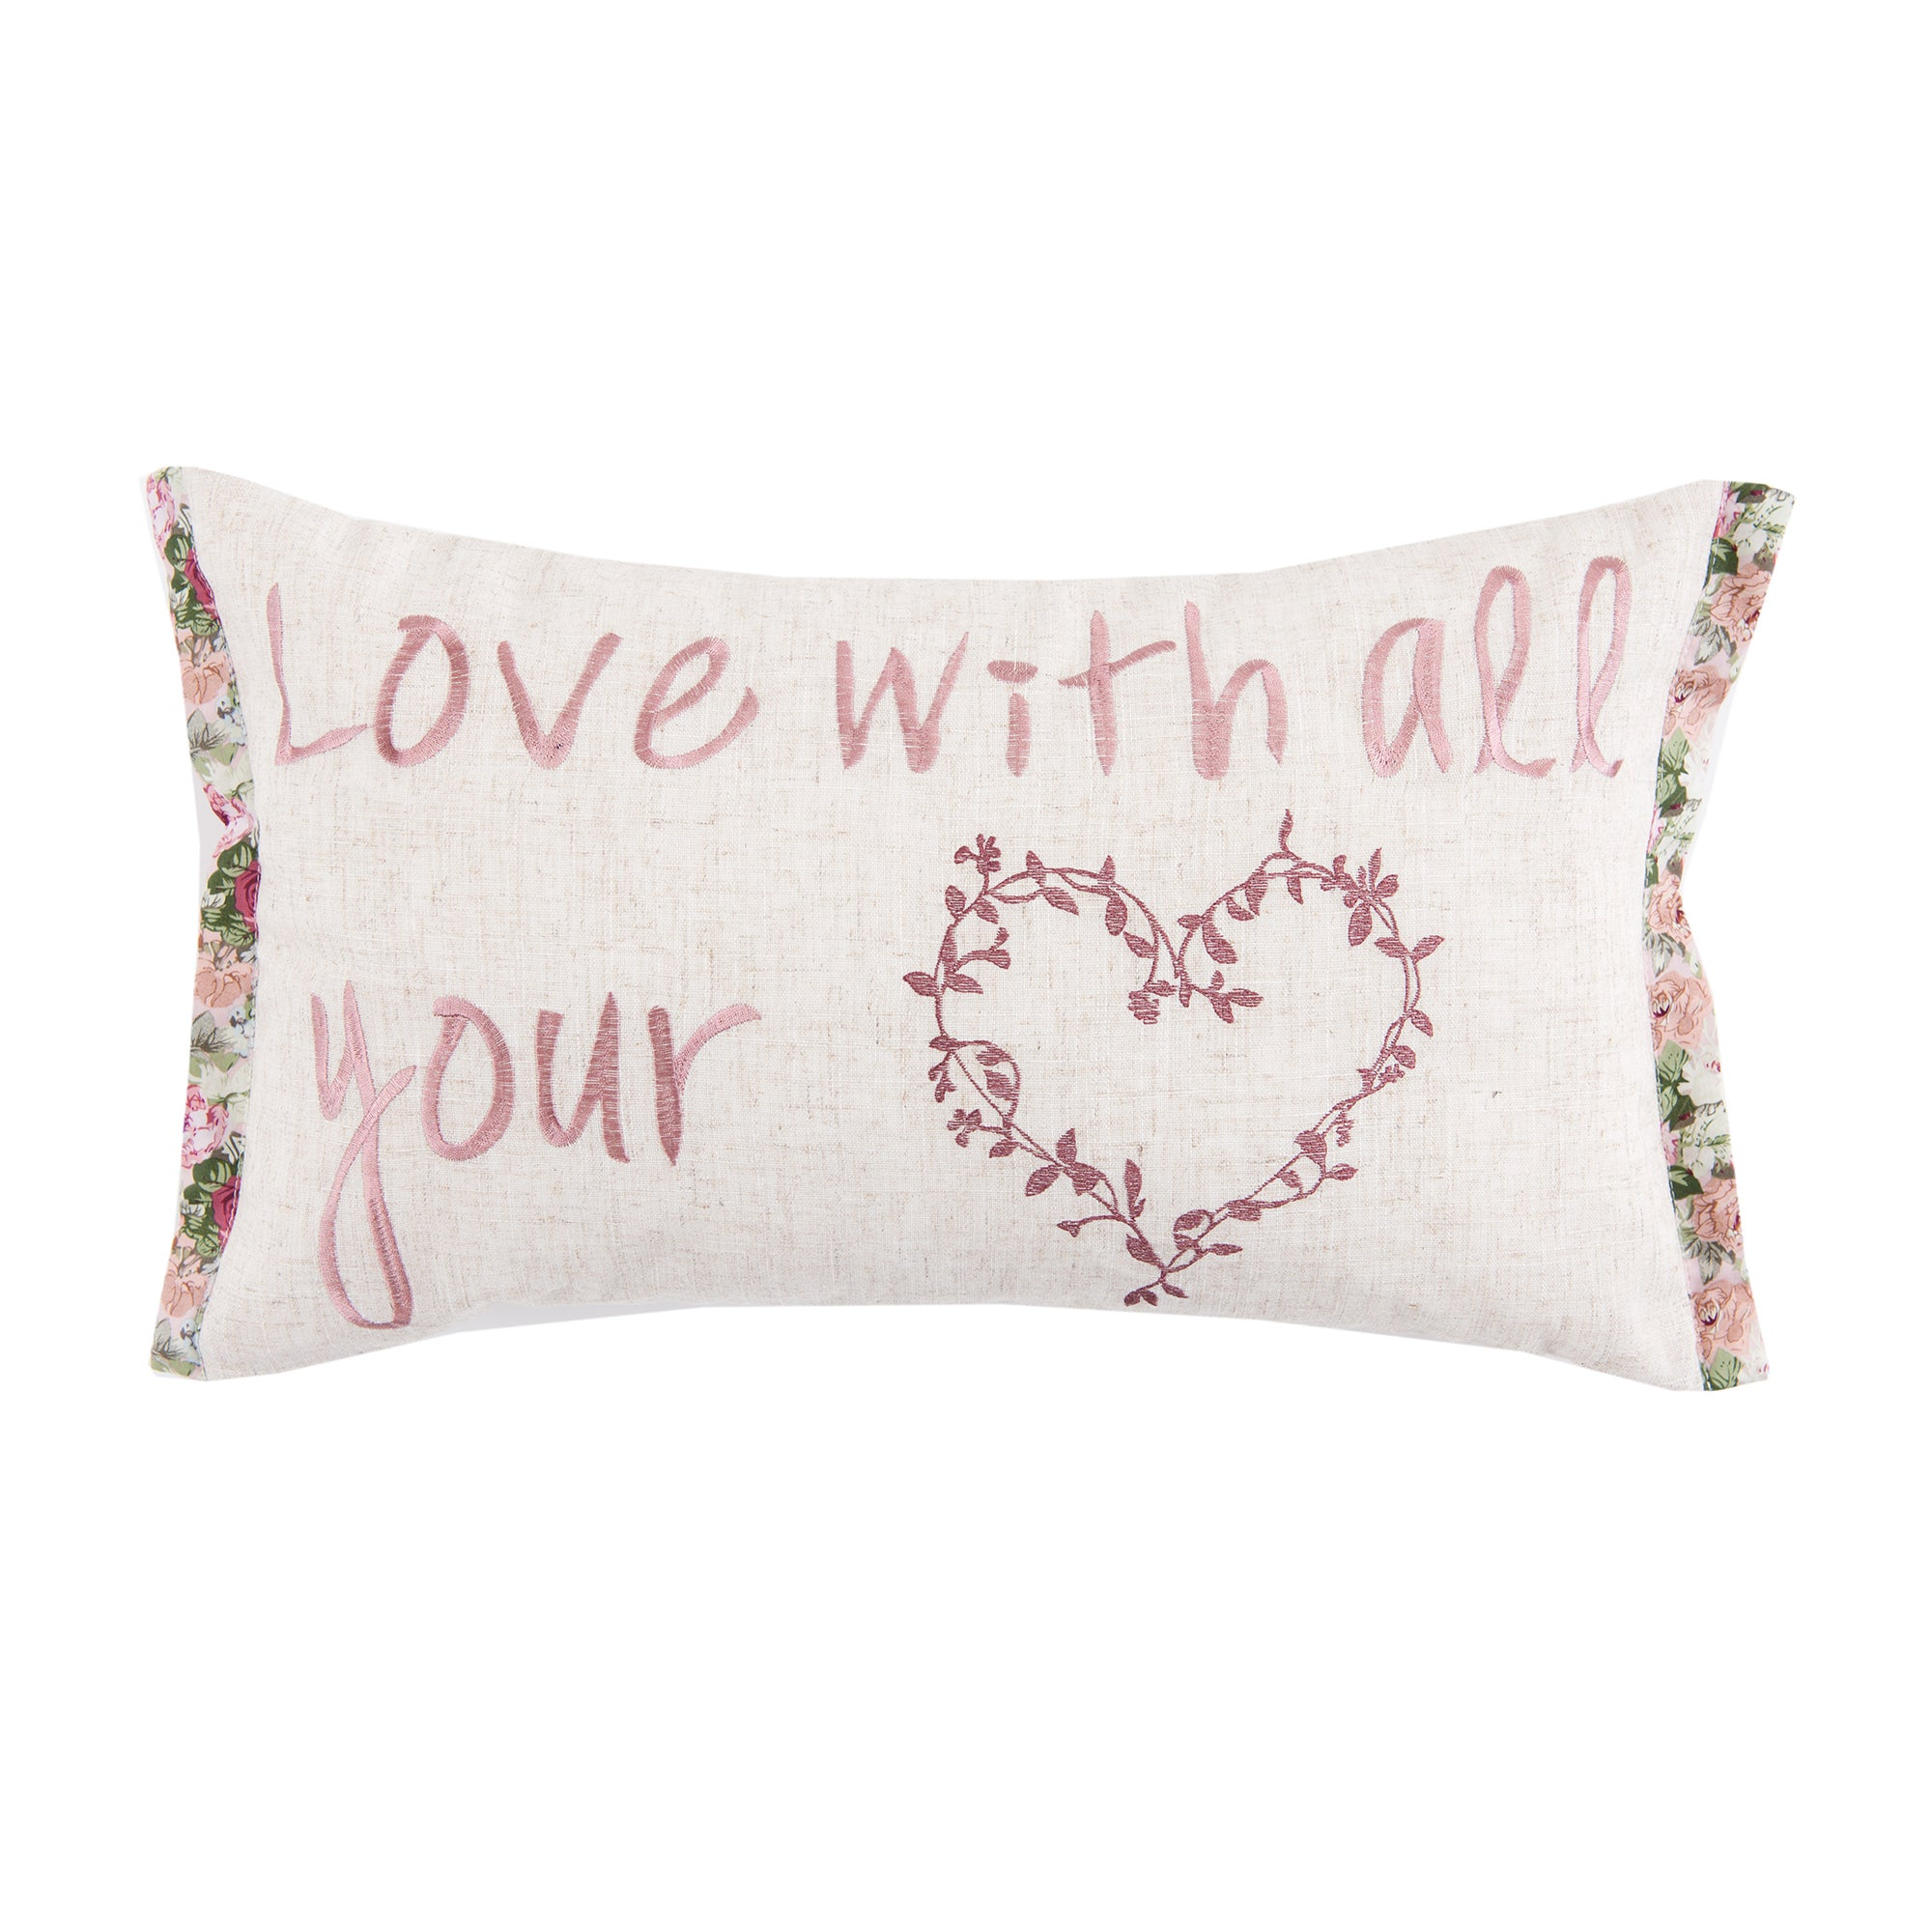 Love With All Your Heart Cushion